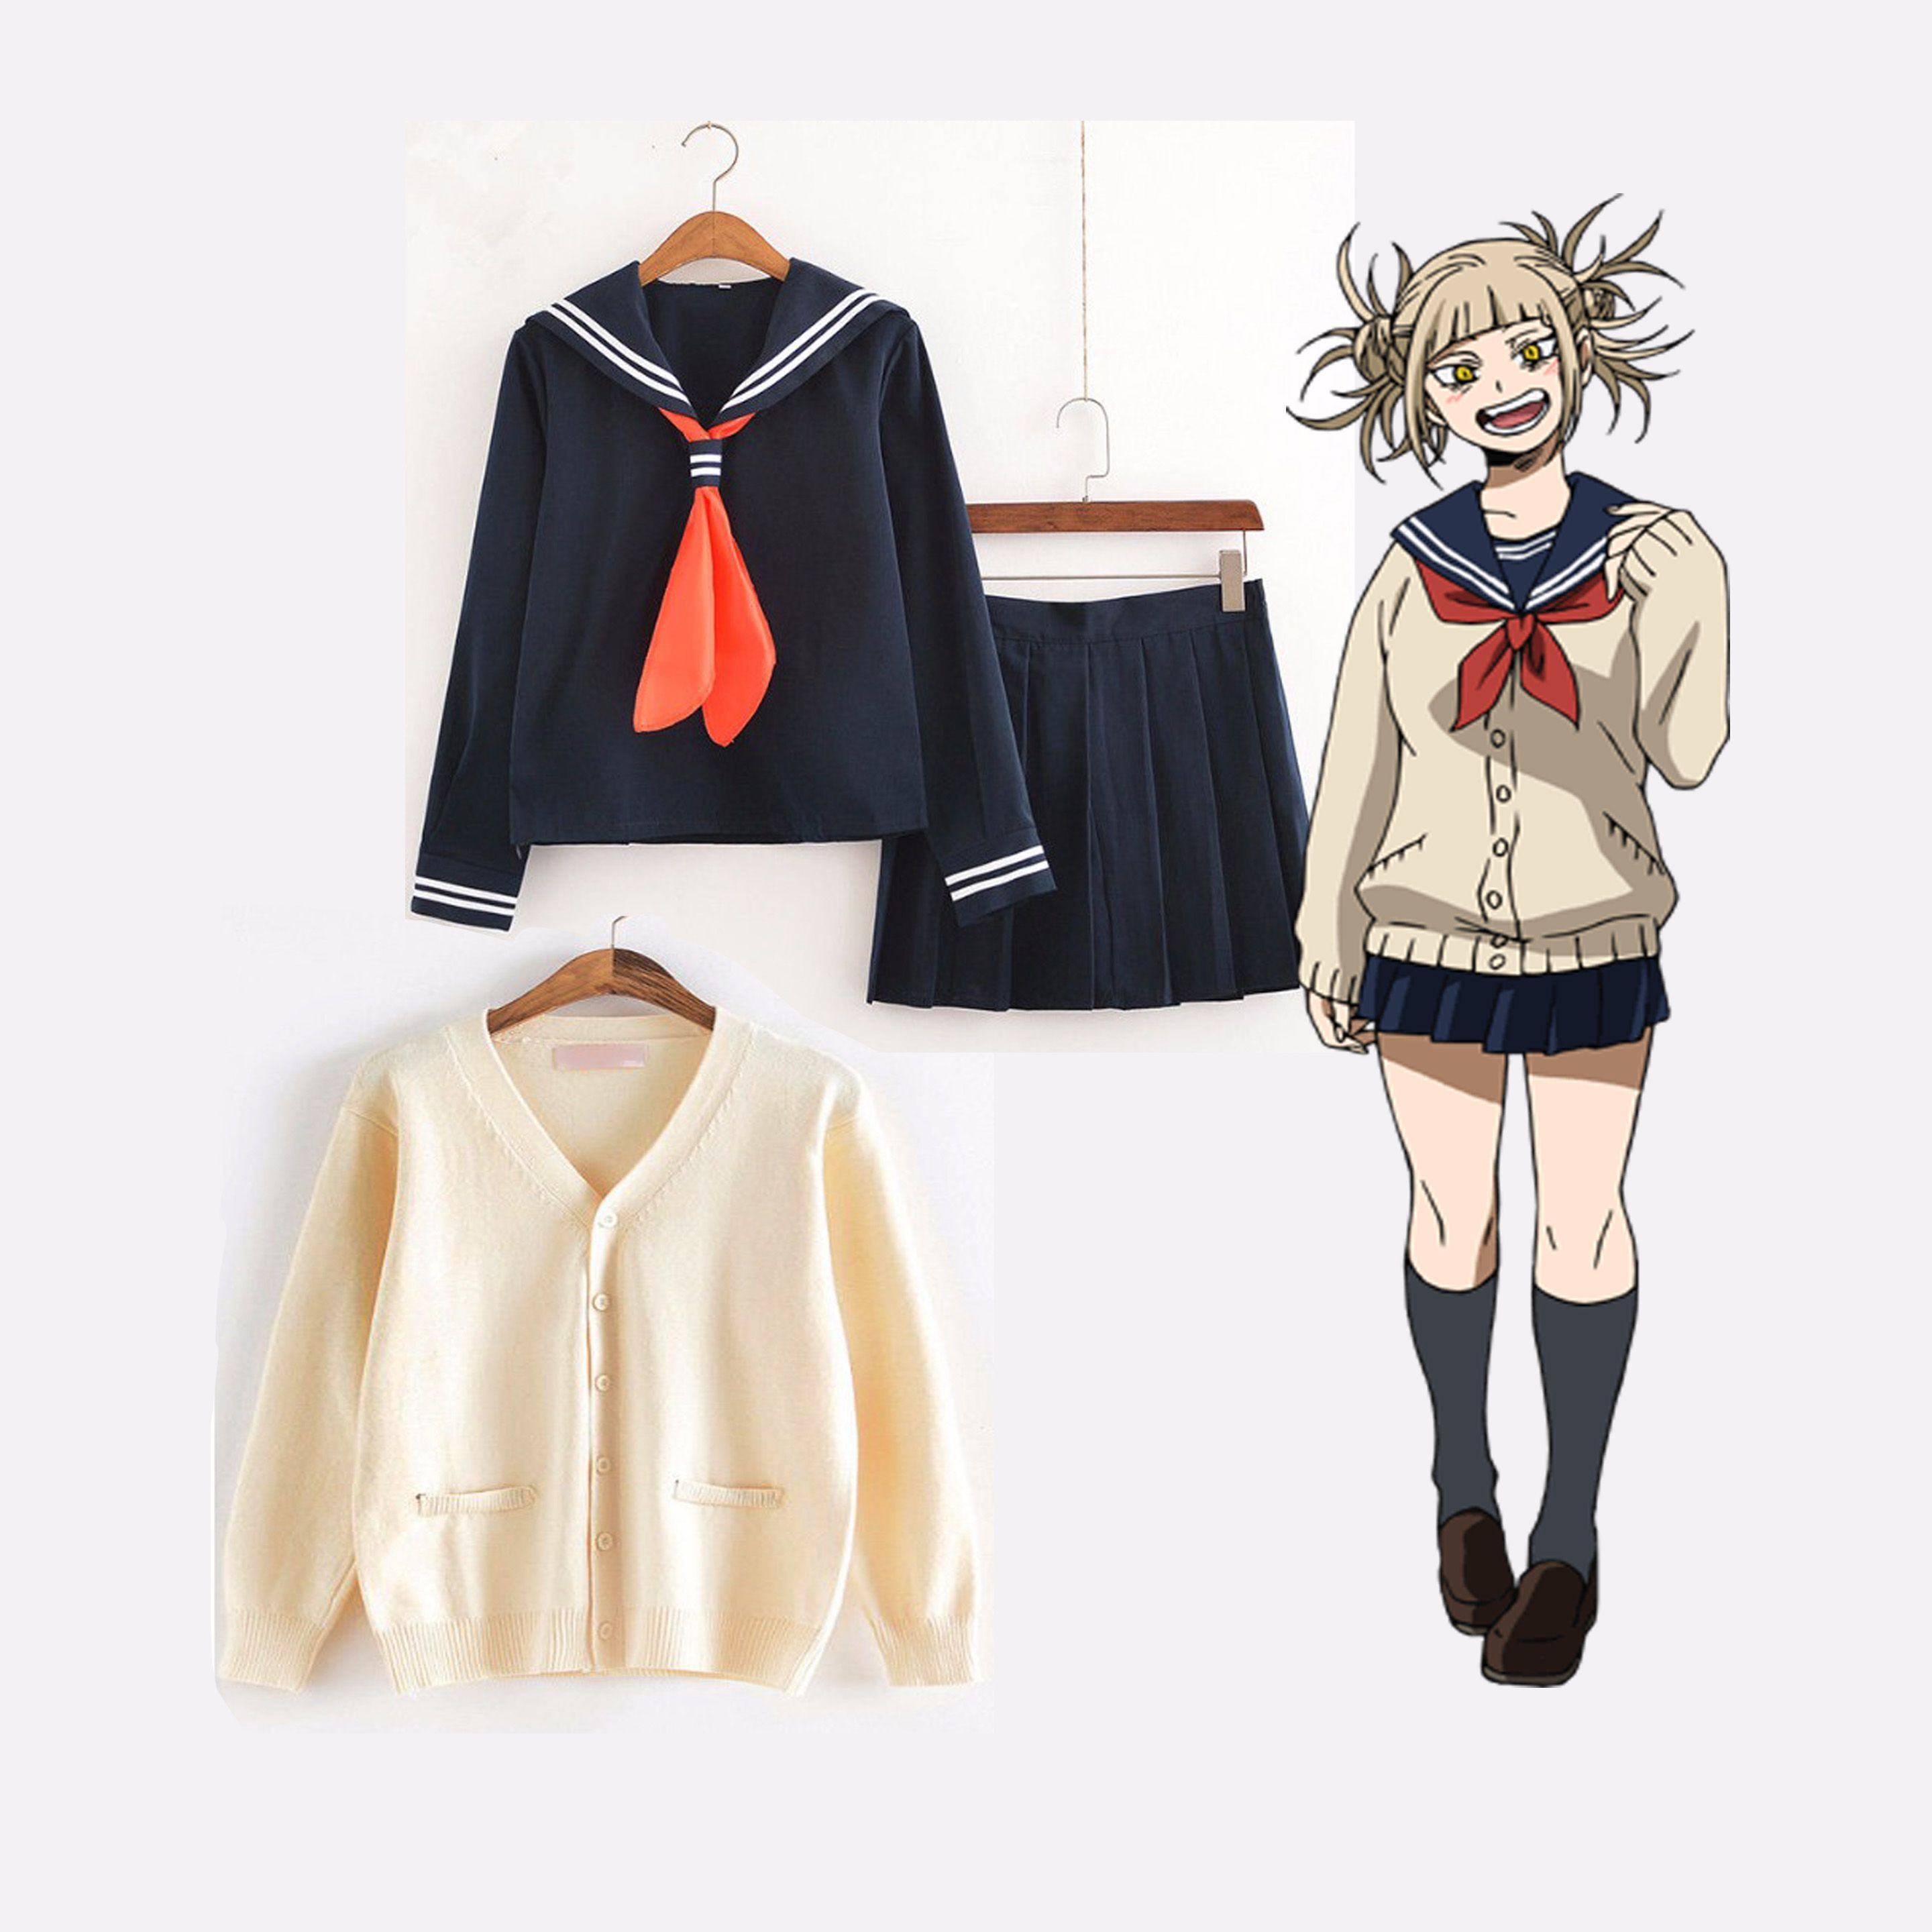 Boku No Hero Academia Himiko Toga High Quality Authentic Cosplay Outfit Anime Inspired Outfits Cosplay Outfits Fandom Outfits